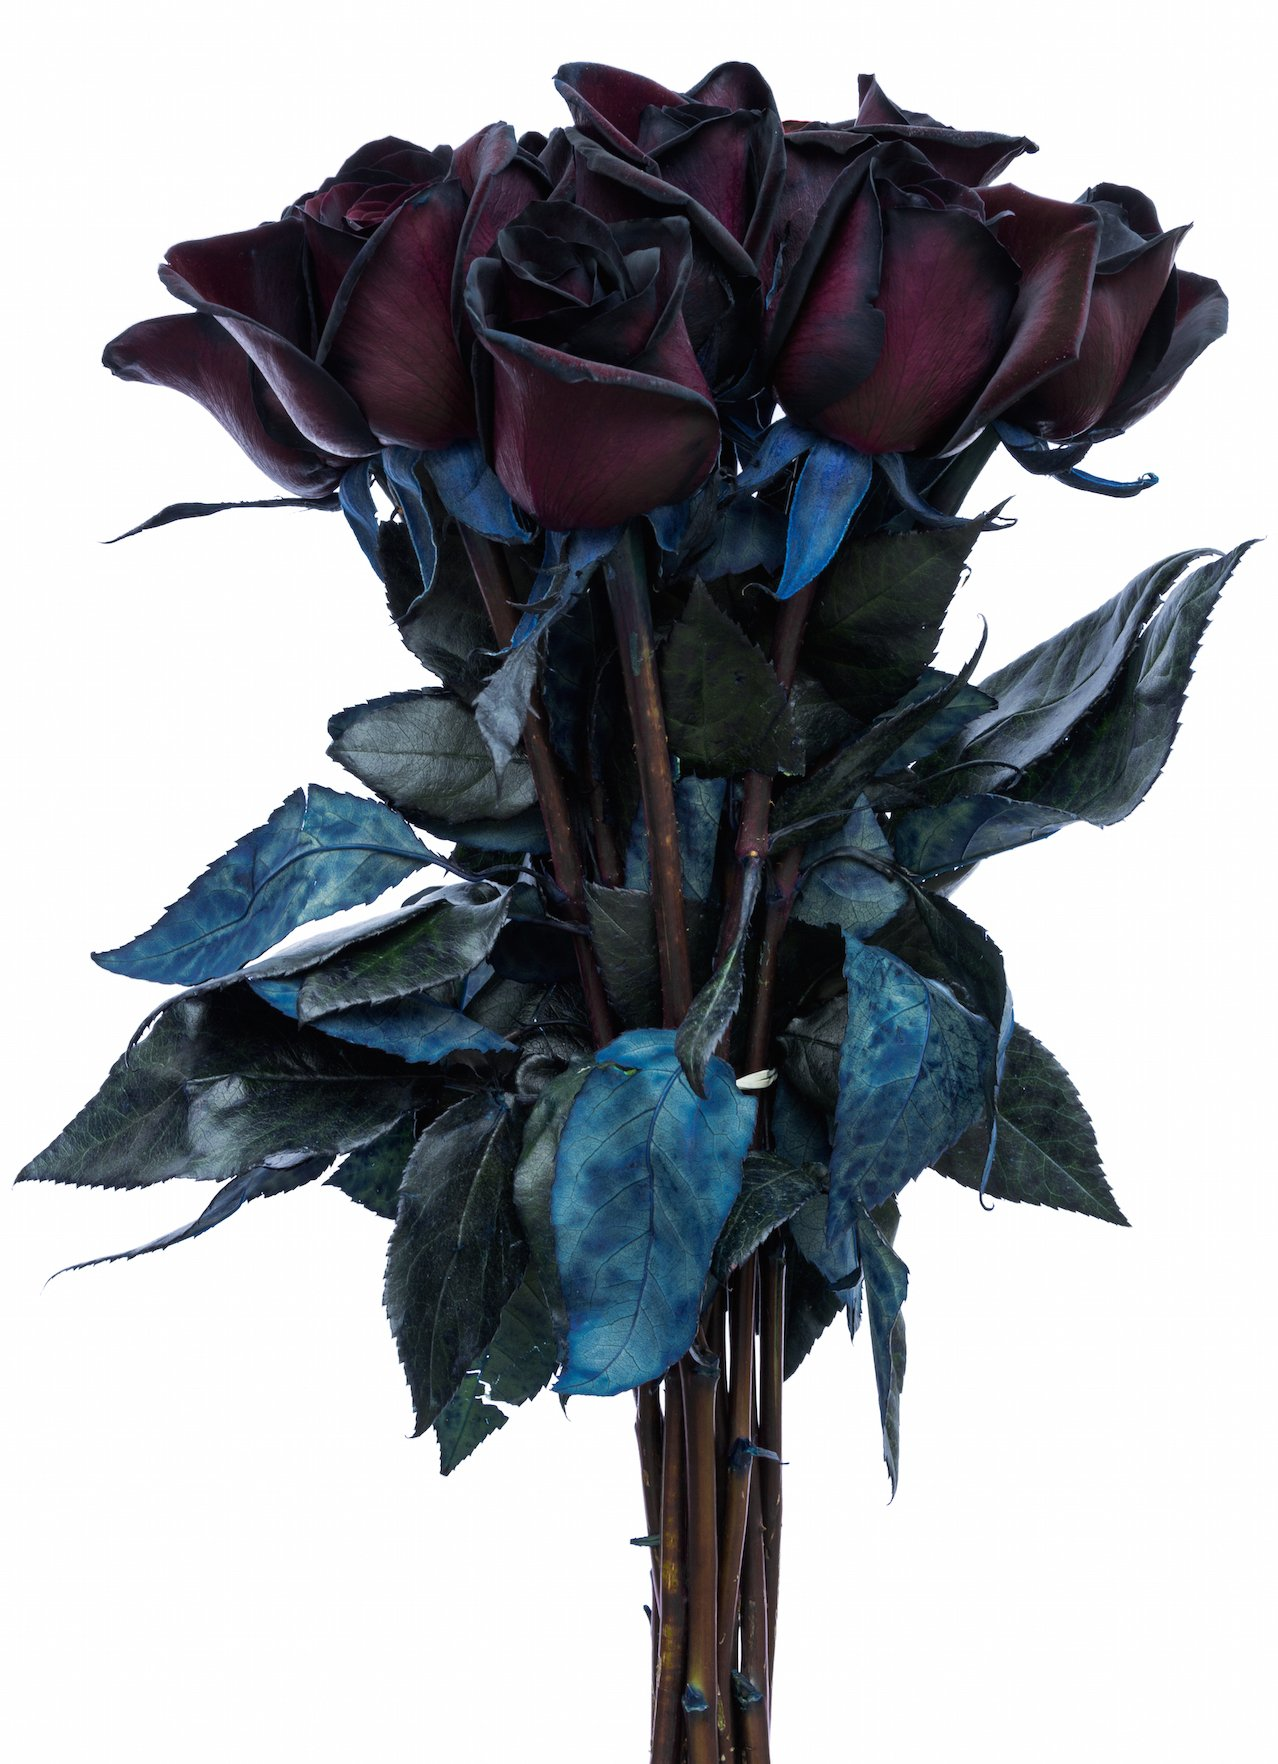 Amazon flower explosion black roses bouquet by real fresh amazon flower explosion black roses bouquet by real fresh tinted black roses 12 stems grocery gourmet food izmirmasajfo